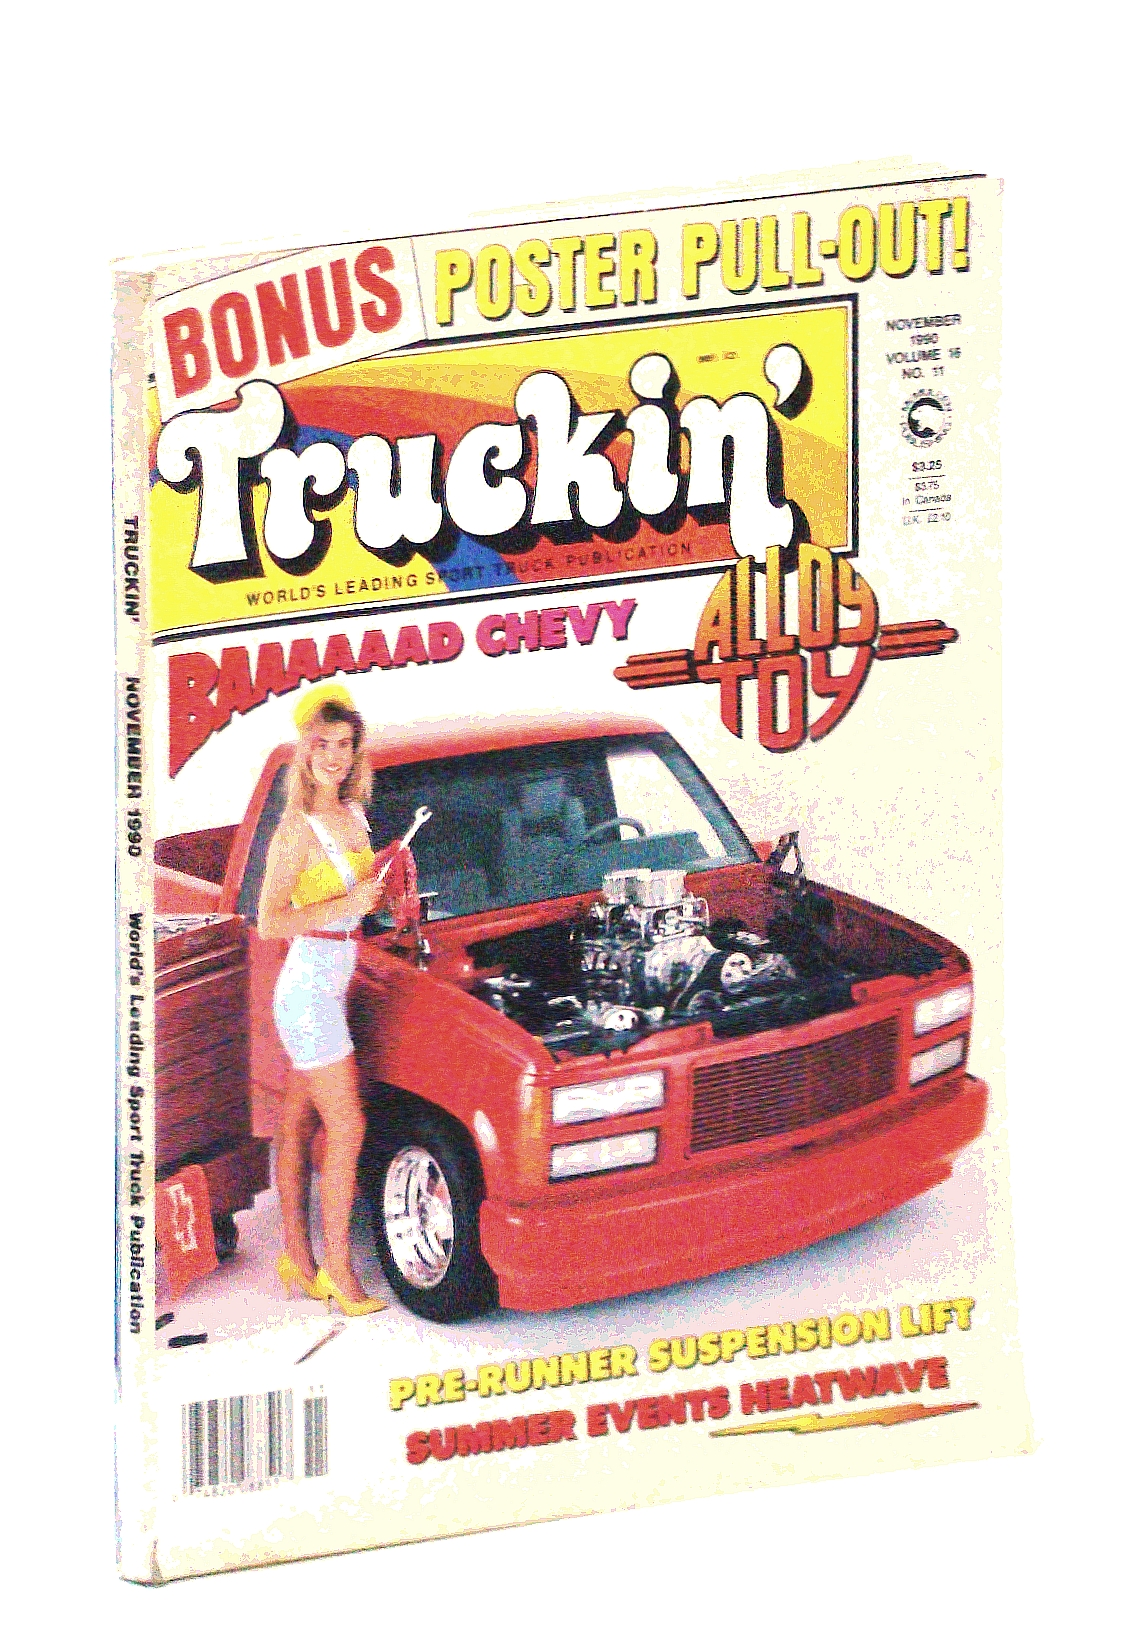 Image for Truckin' Magazine, November [Nov.] 1990: Alloy Toy (including Centerfold photo)/ Irene Lickl Cover Photo